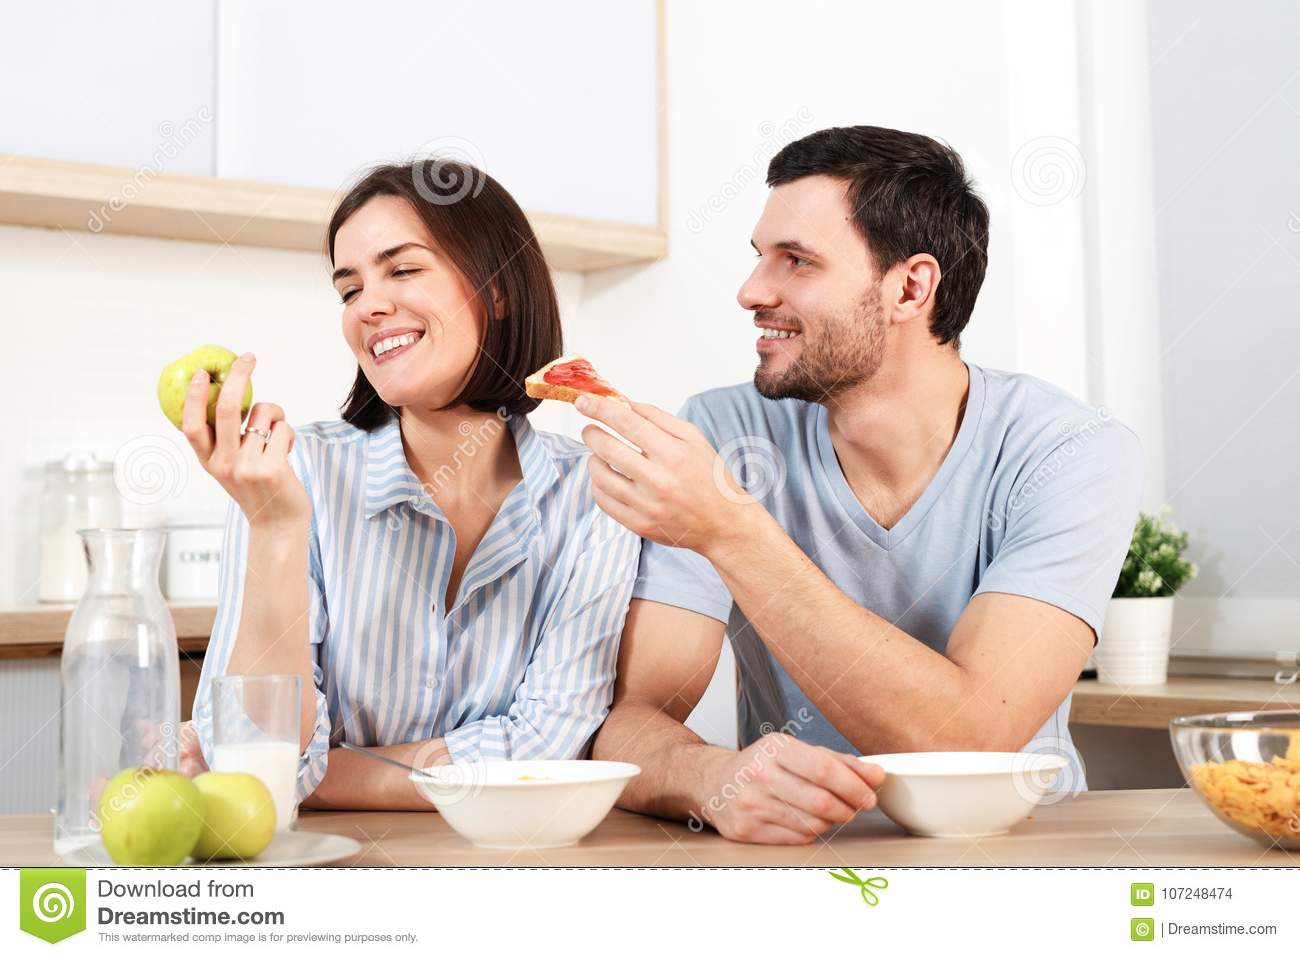 Happy couple spend free time or weekend together at kitchen, glad husband suggests wife to eat snack, she refuses as